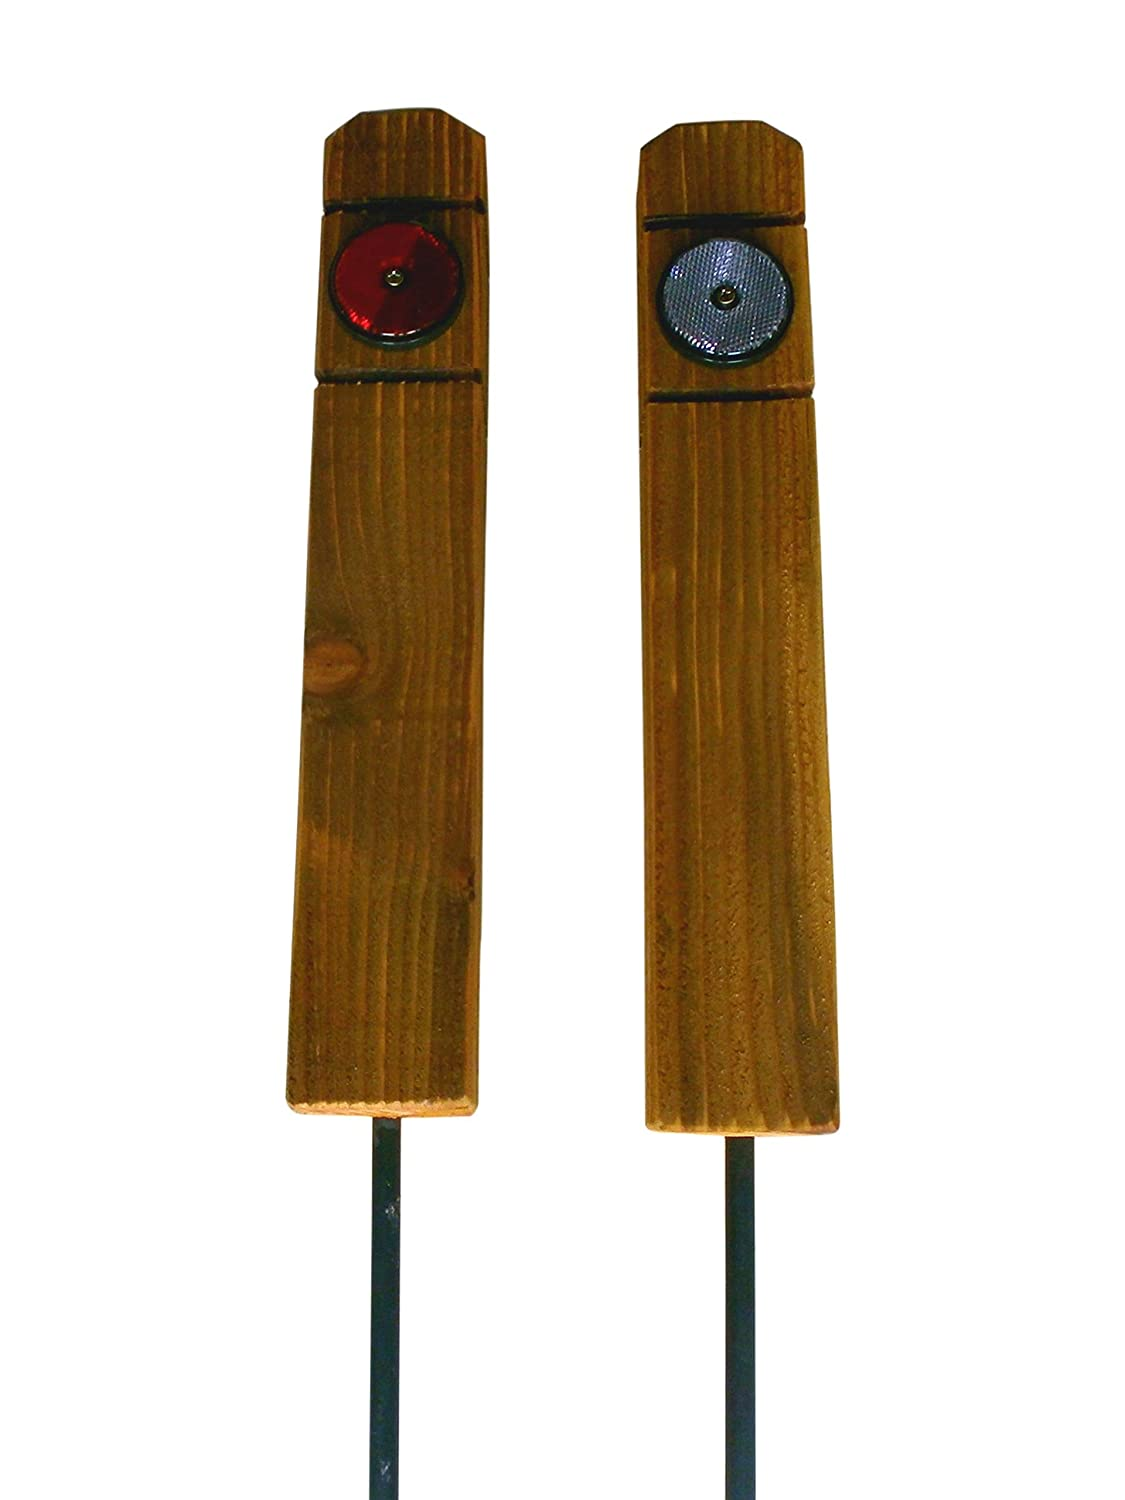 2 x 18 inch (45cm) Timber Twin Reflective Keep Off Grass Verge Posts Boundary Markers, Push in Ground Reflective Both Sides